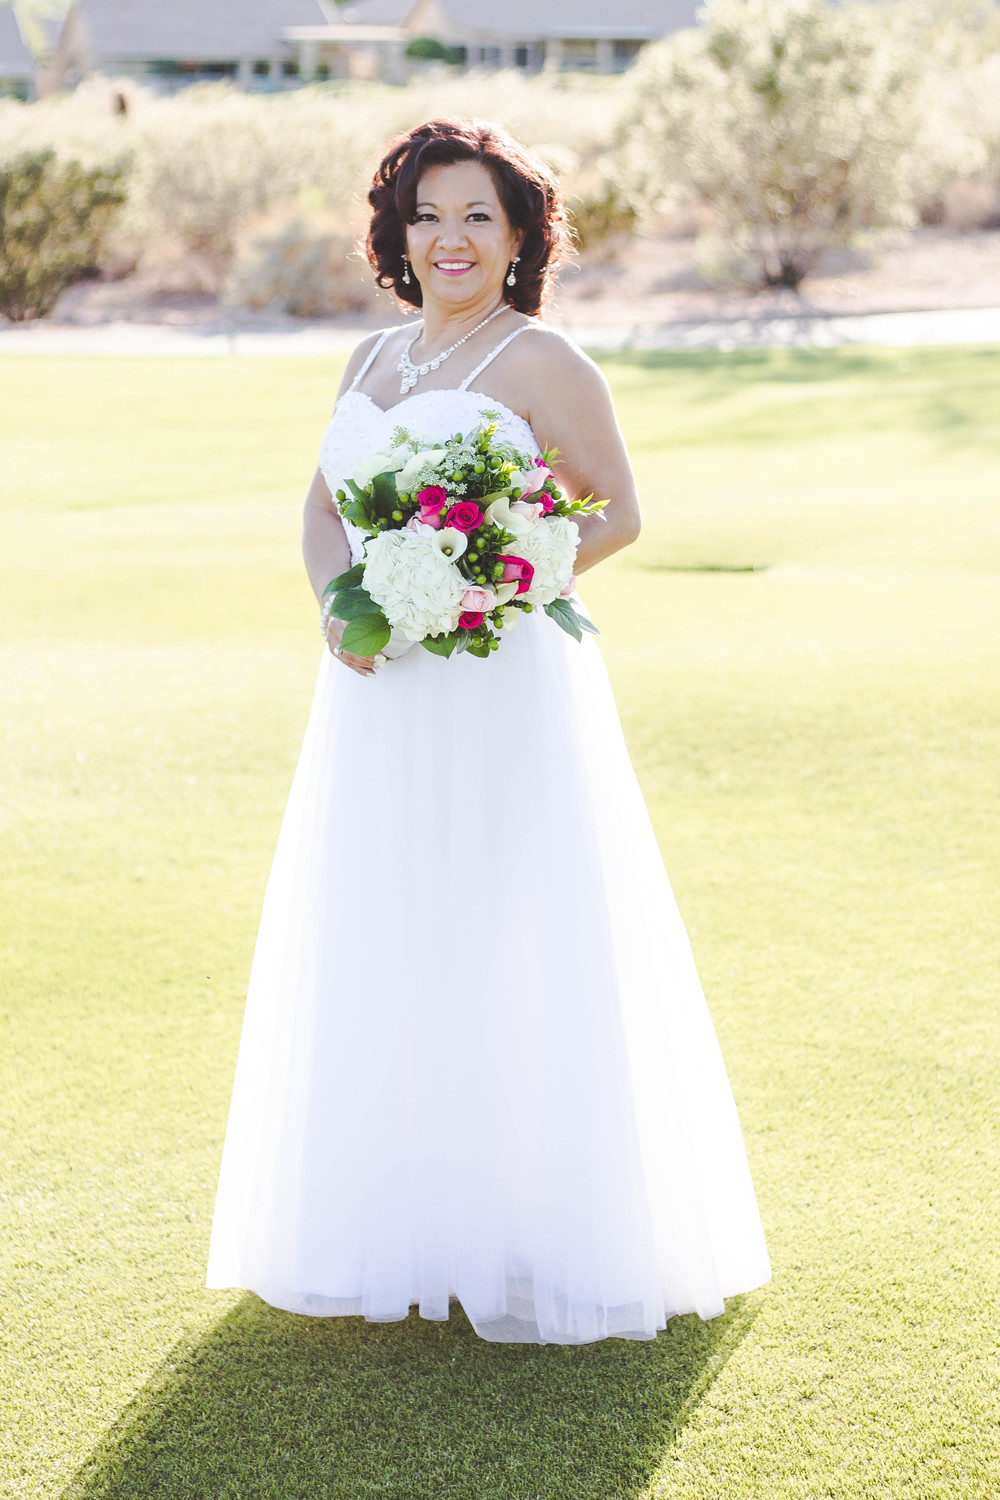 I just love this shot. This dress caught the light so beautifully! The bride looked like she was floating all day...